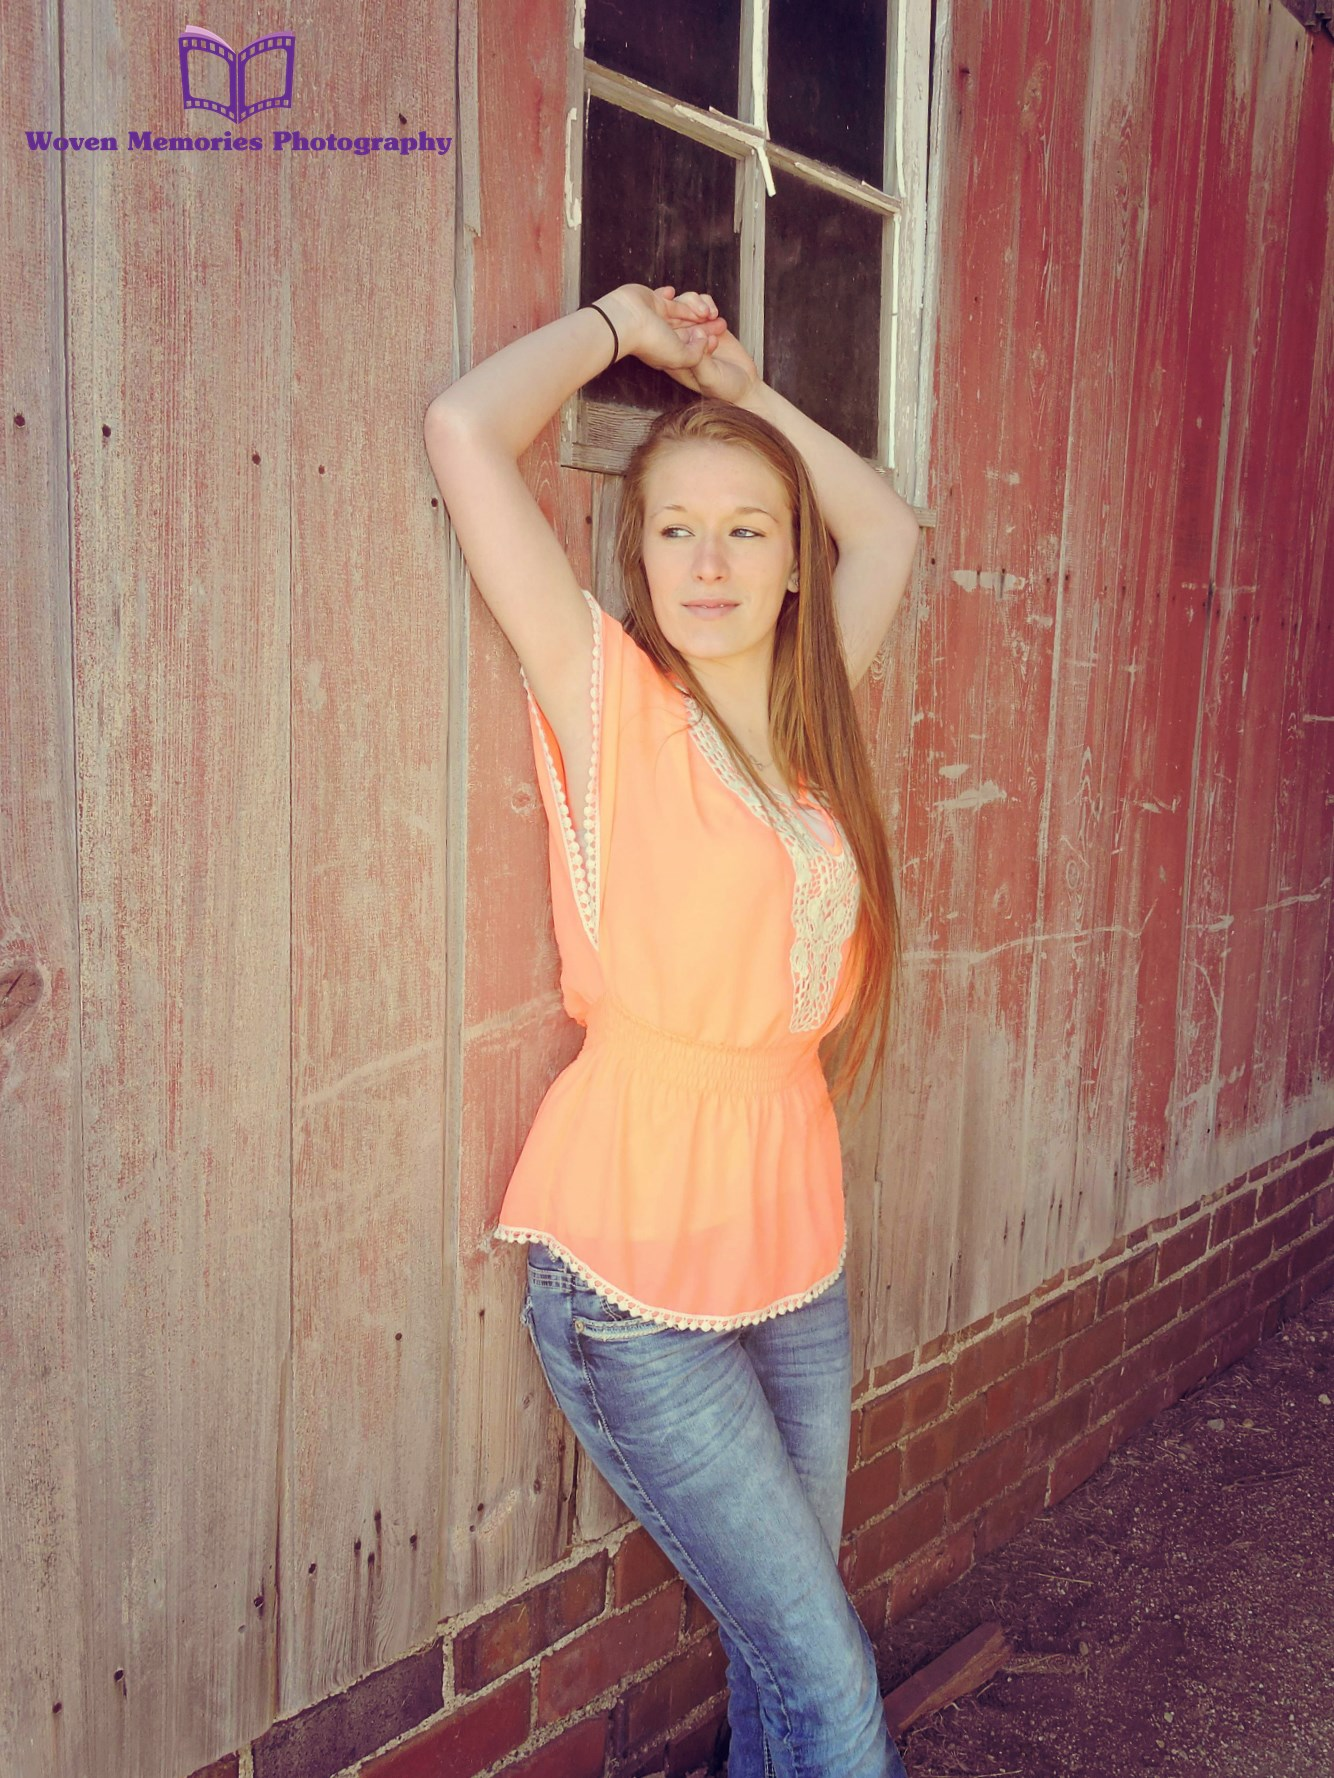 CourtneySeniorPics6